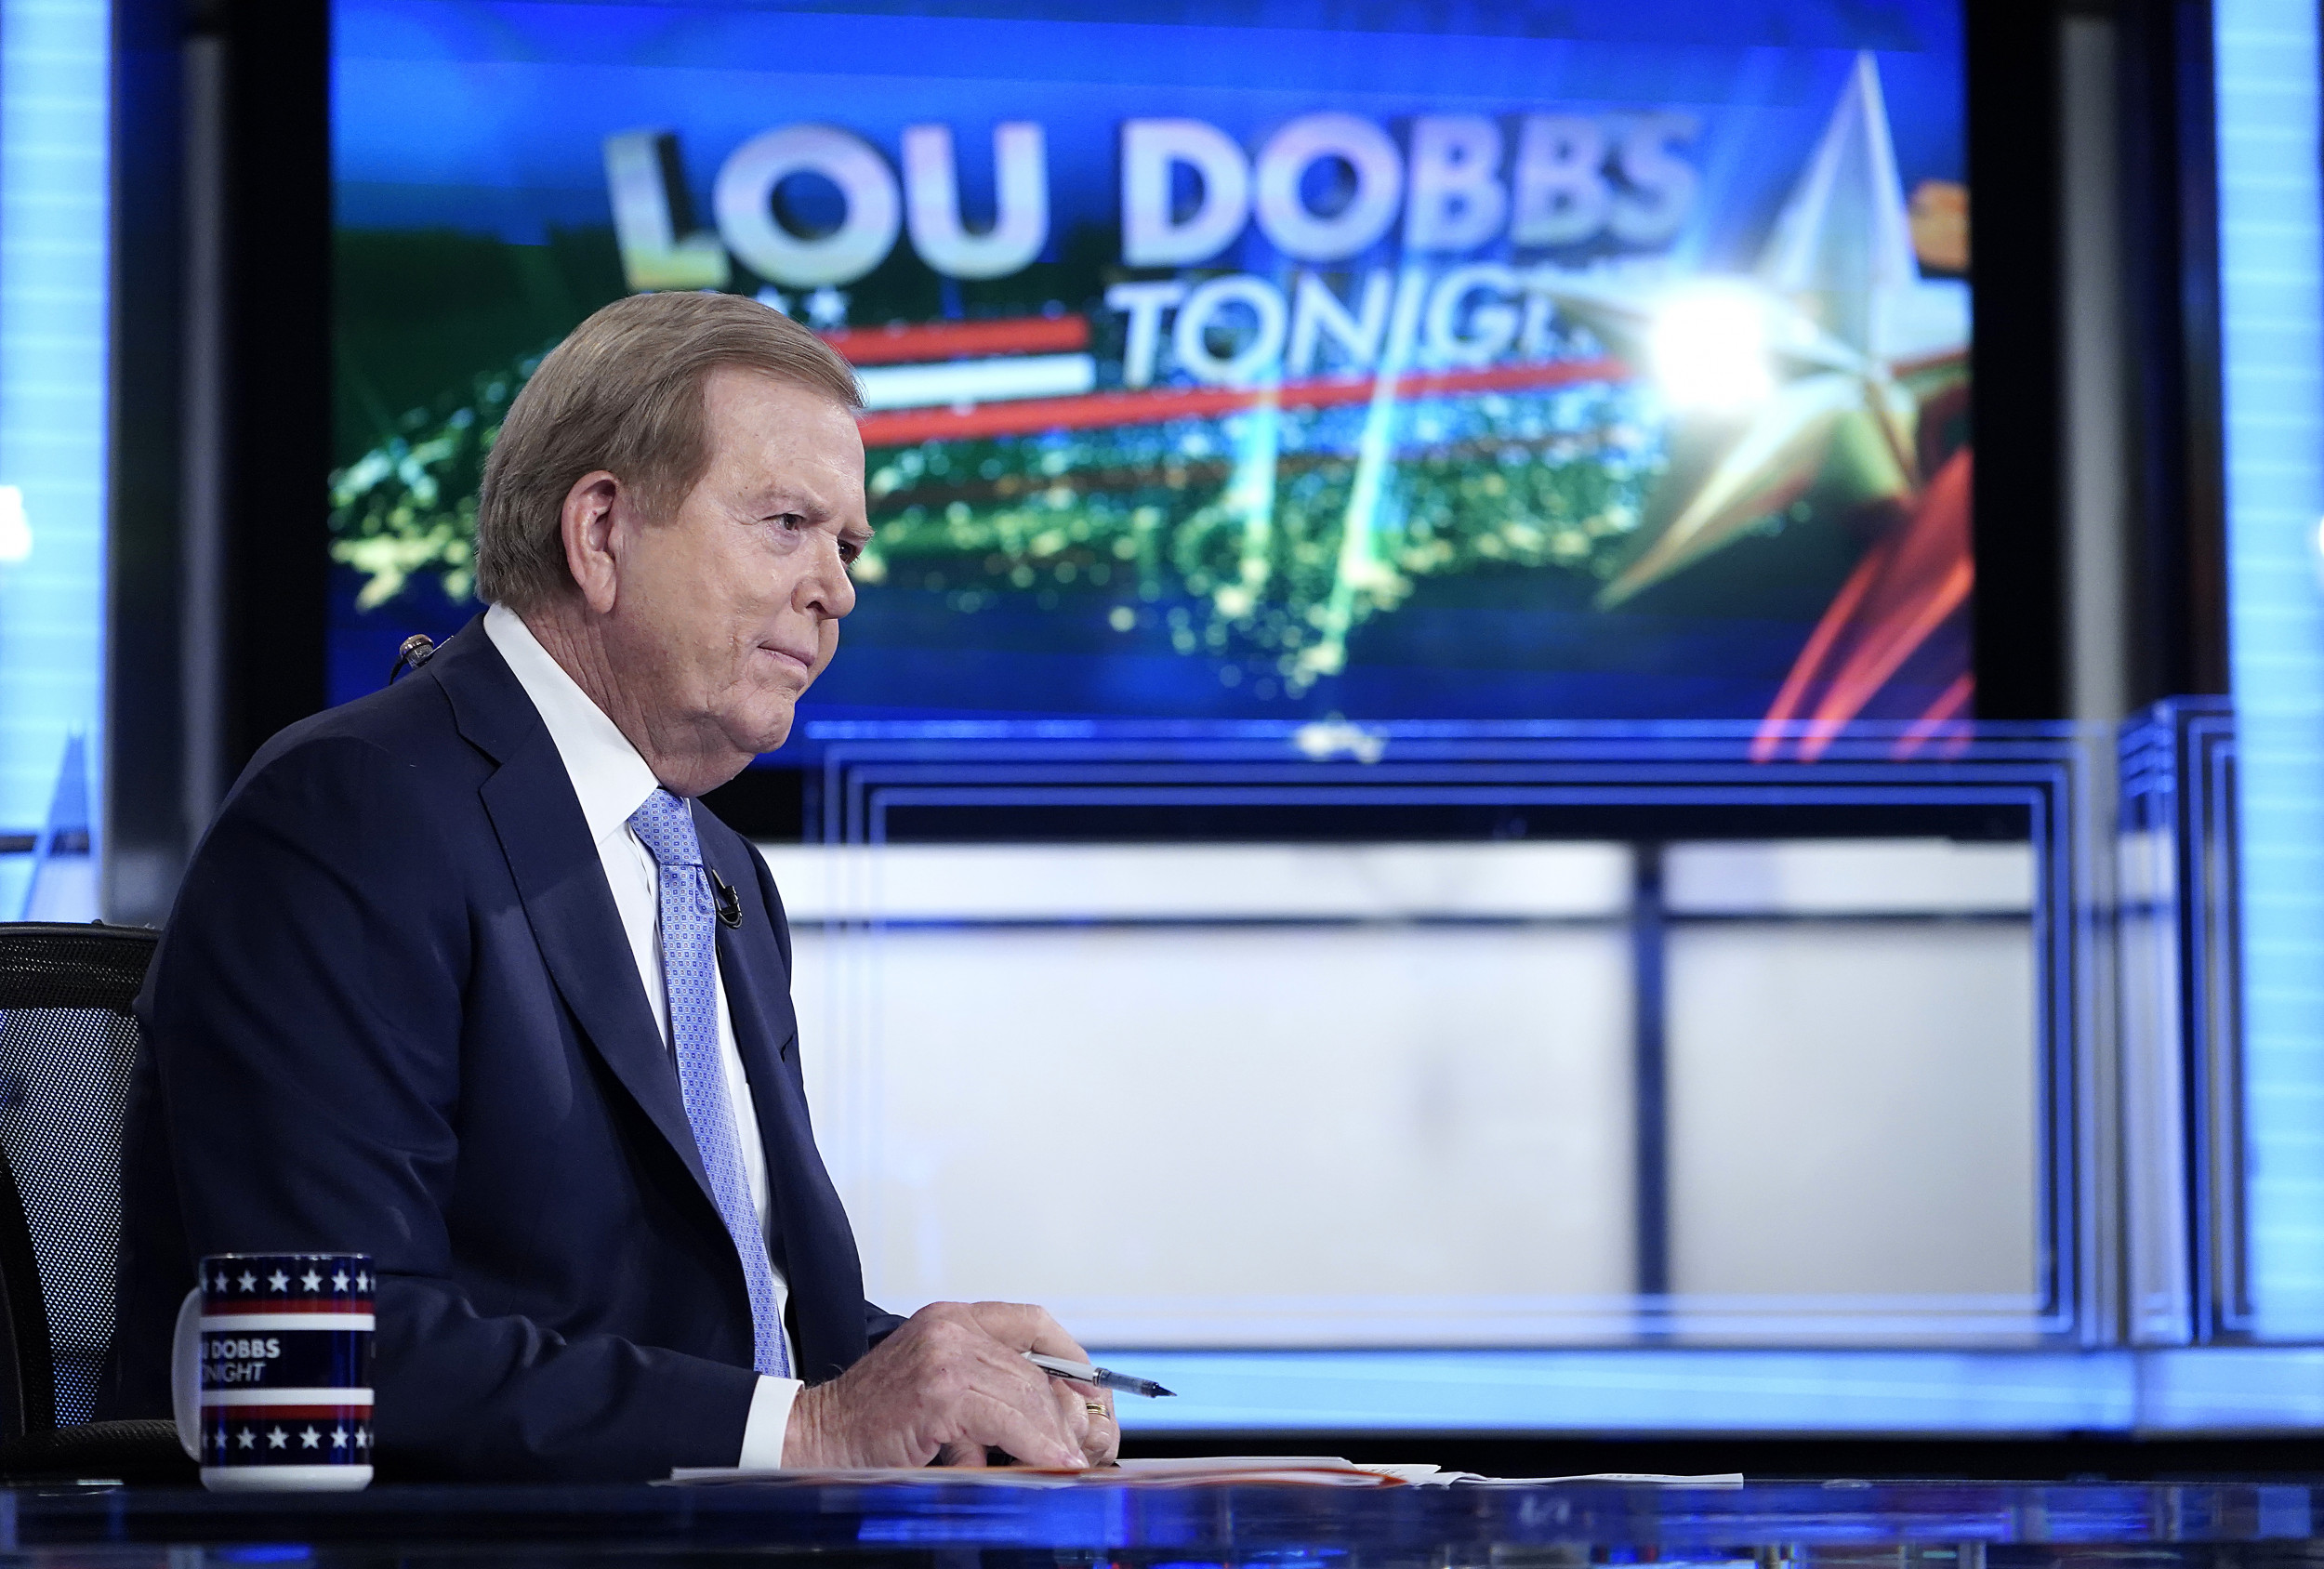 Fox Business host Lou Dobbs tells South Carolina residents to vote against Lindsey Graham